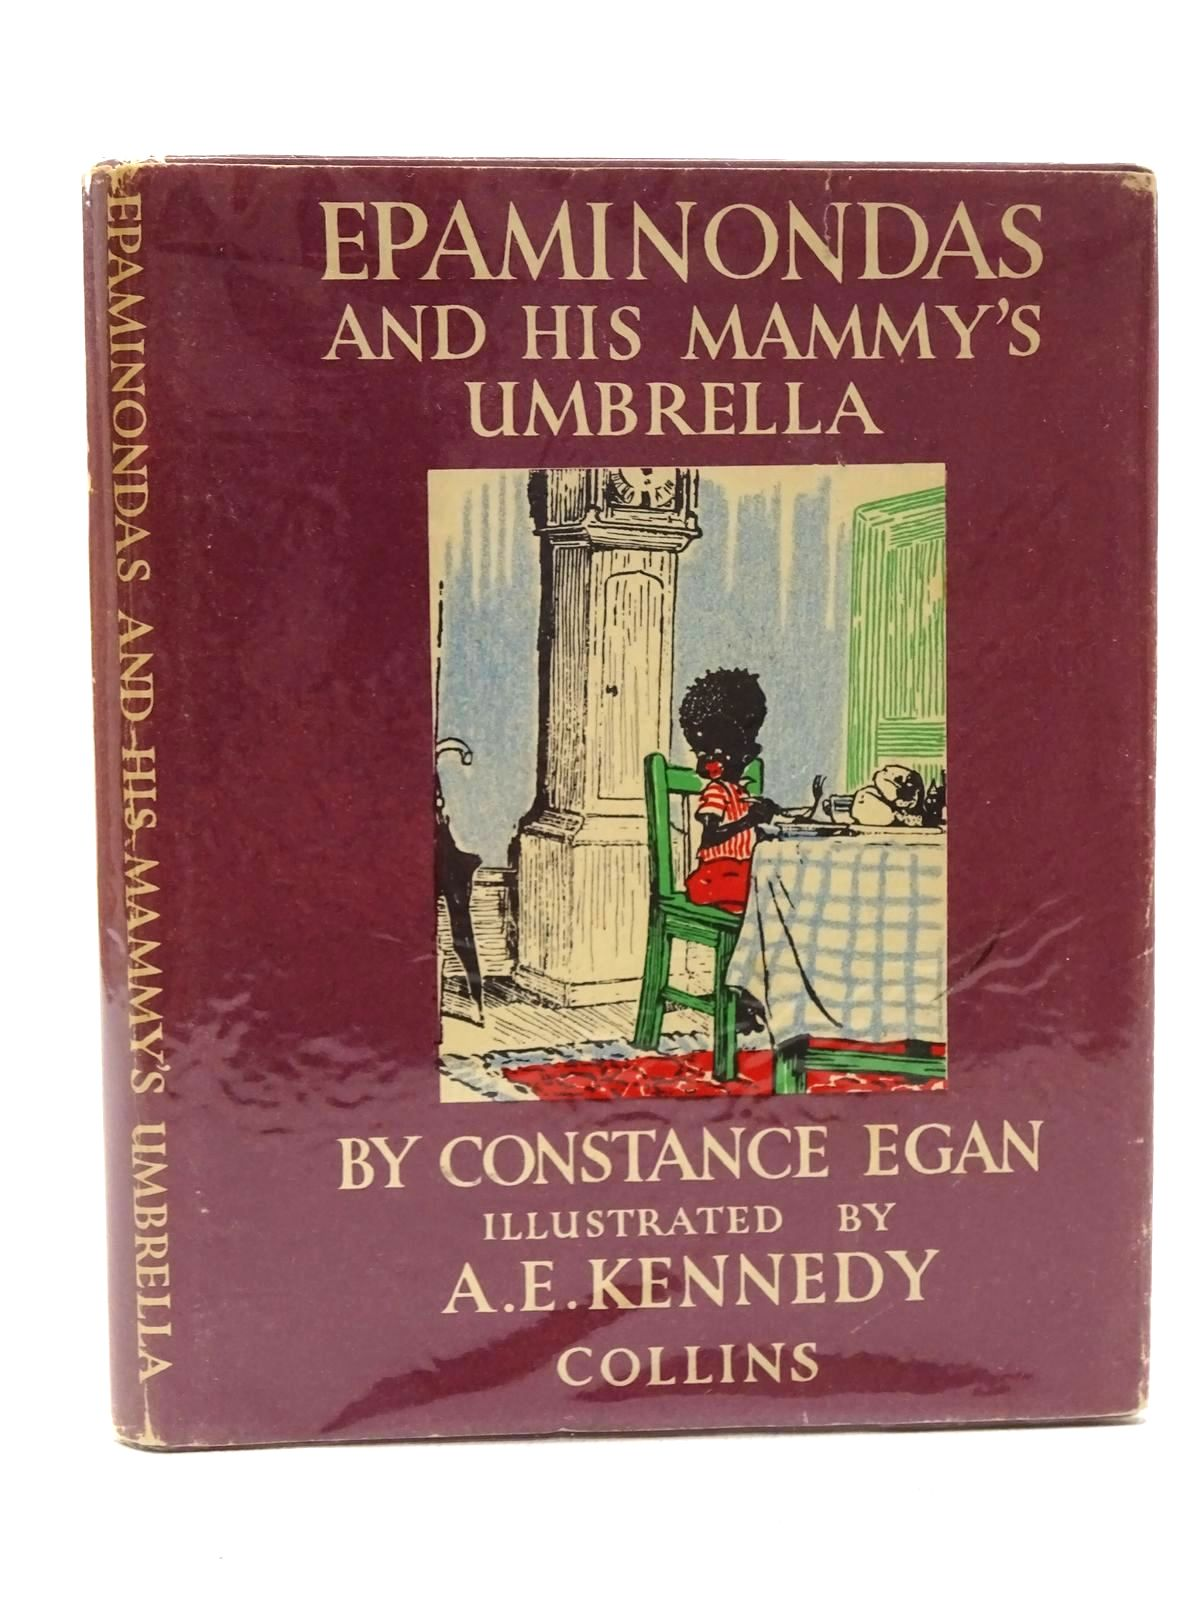 Photo of EPAMINONDAS AND HIS MAMMY'S UMBRELLA written by Egan, Constance illustrated by Kennedy, A.E. published by Collins (STOCK CODE: 2124736)  for sale by Stella & Rose's Books